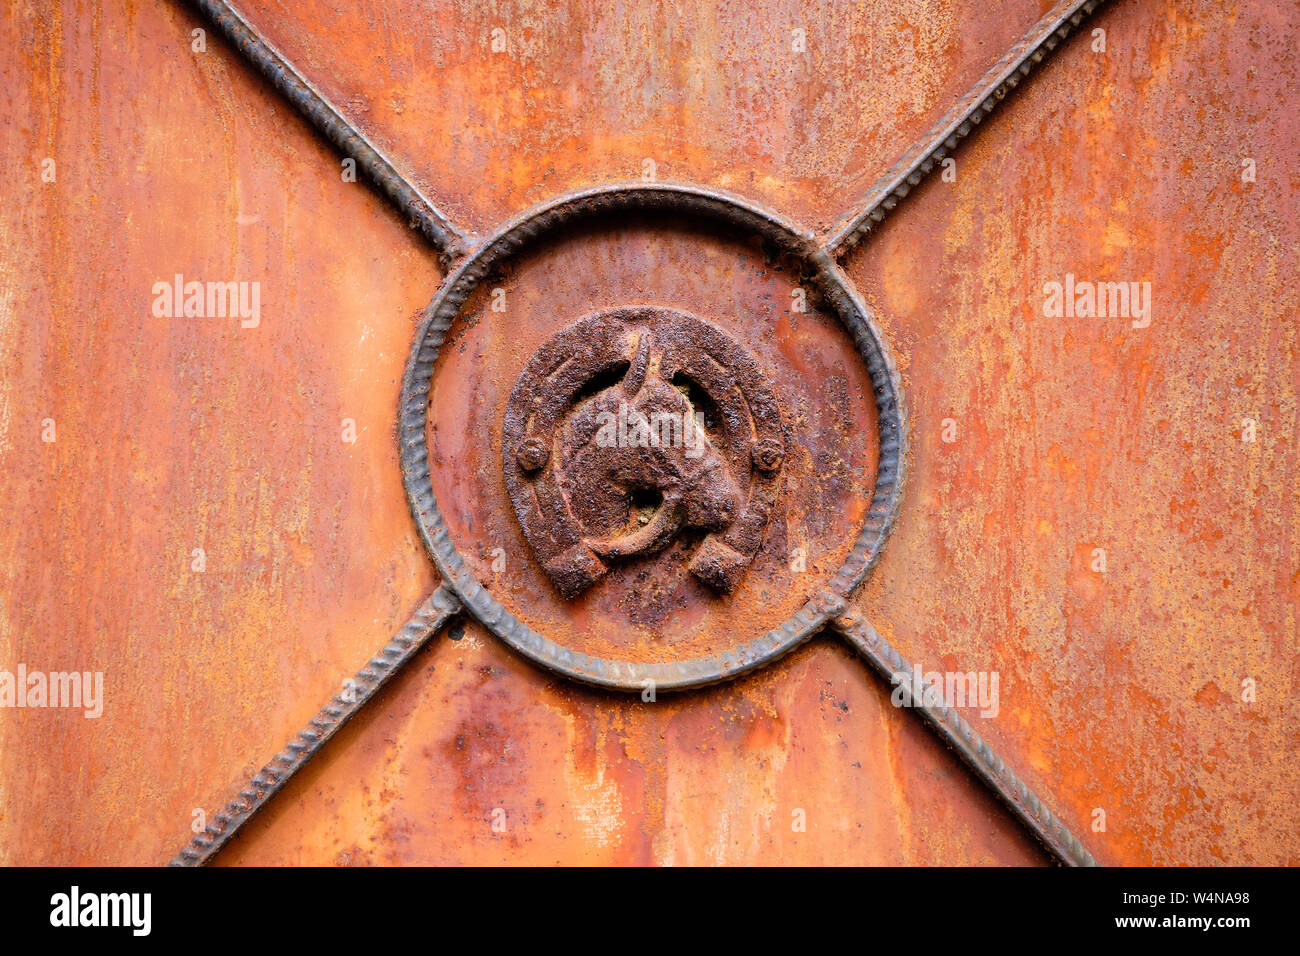 Horse Head Framed In Horseshoe On Close Up Of Old Rusted Abandoned Metal Door Stock Photo Alamy